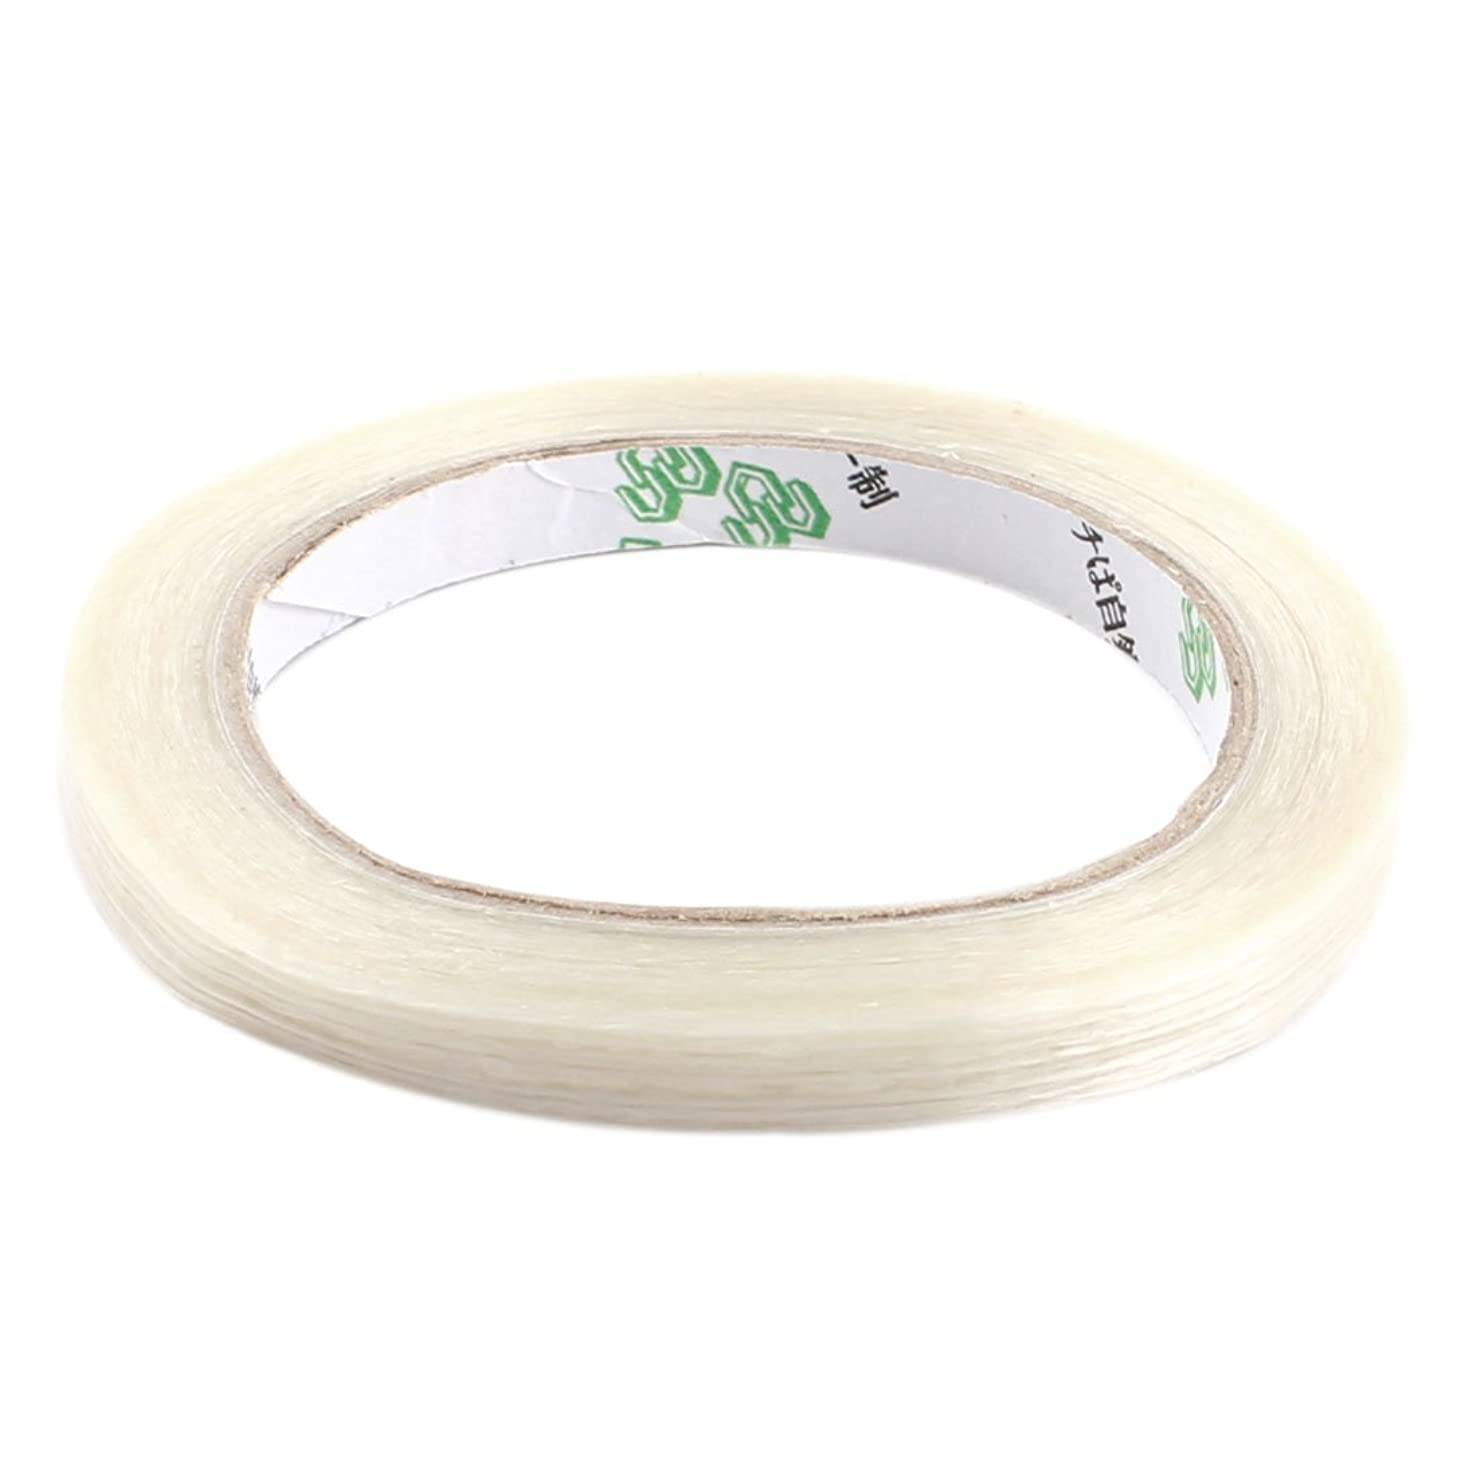 uxcell RC Model Parts 10mm Width 25meter Long Adhesive Glass Fibre Tape Roll